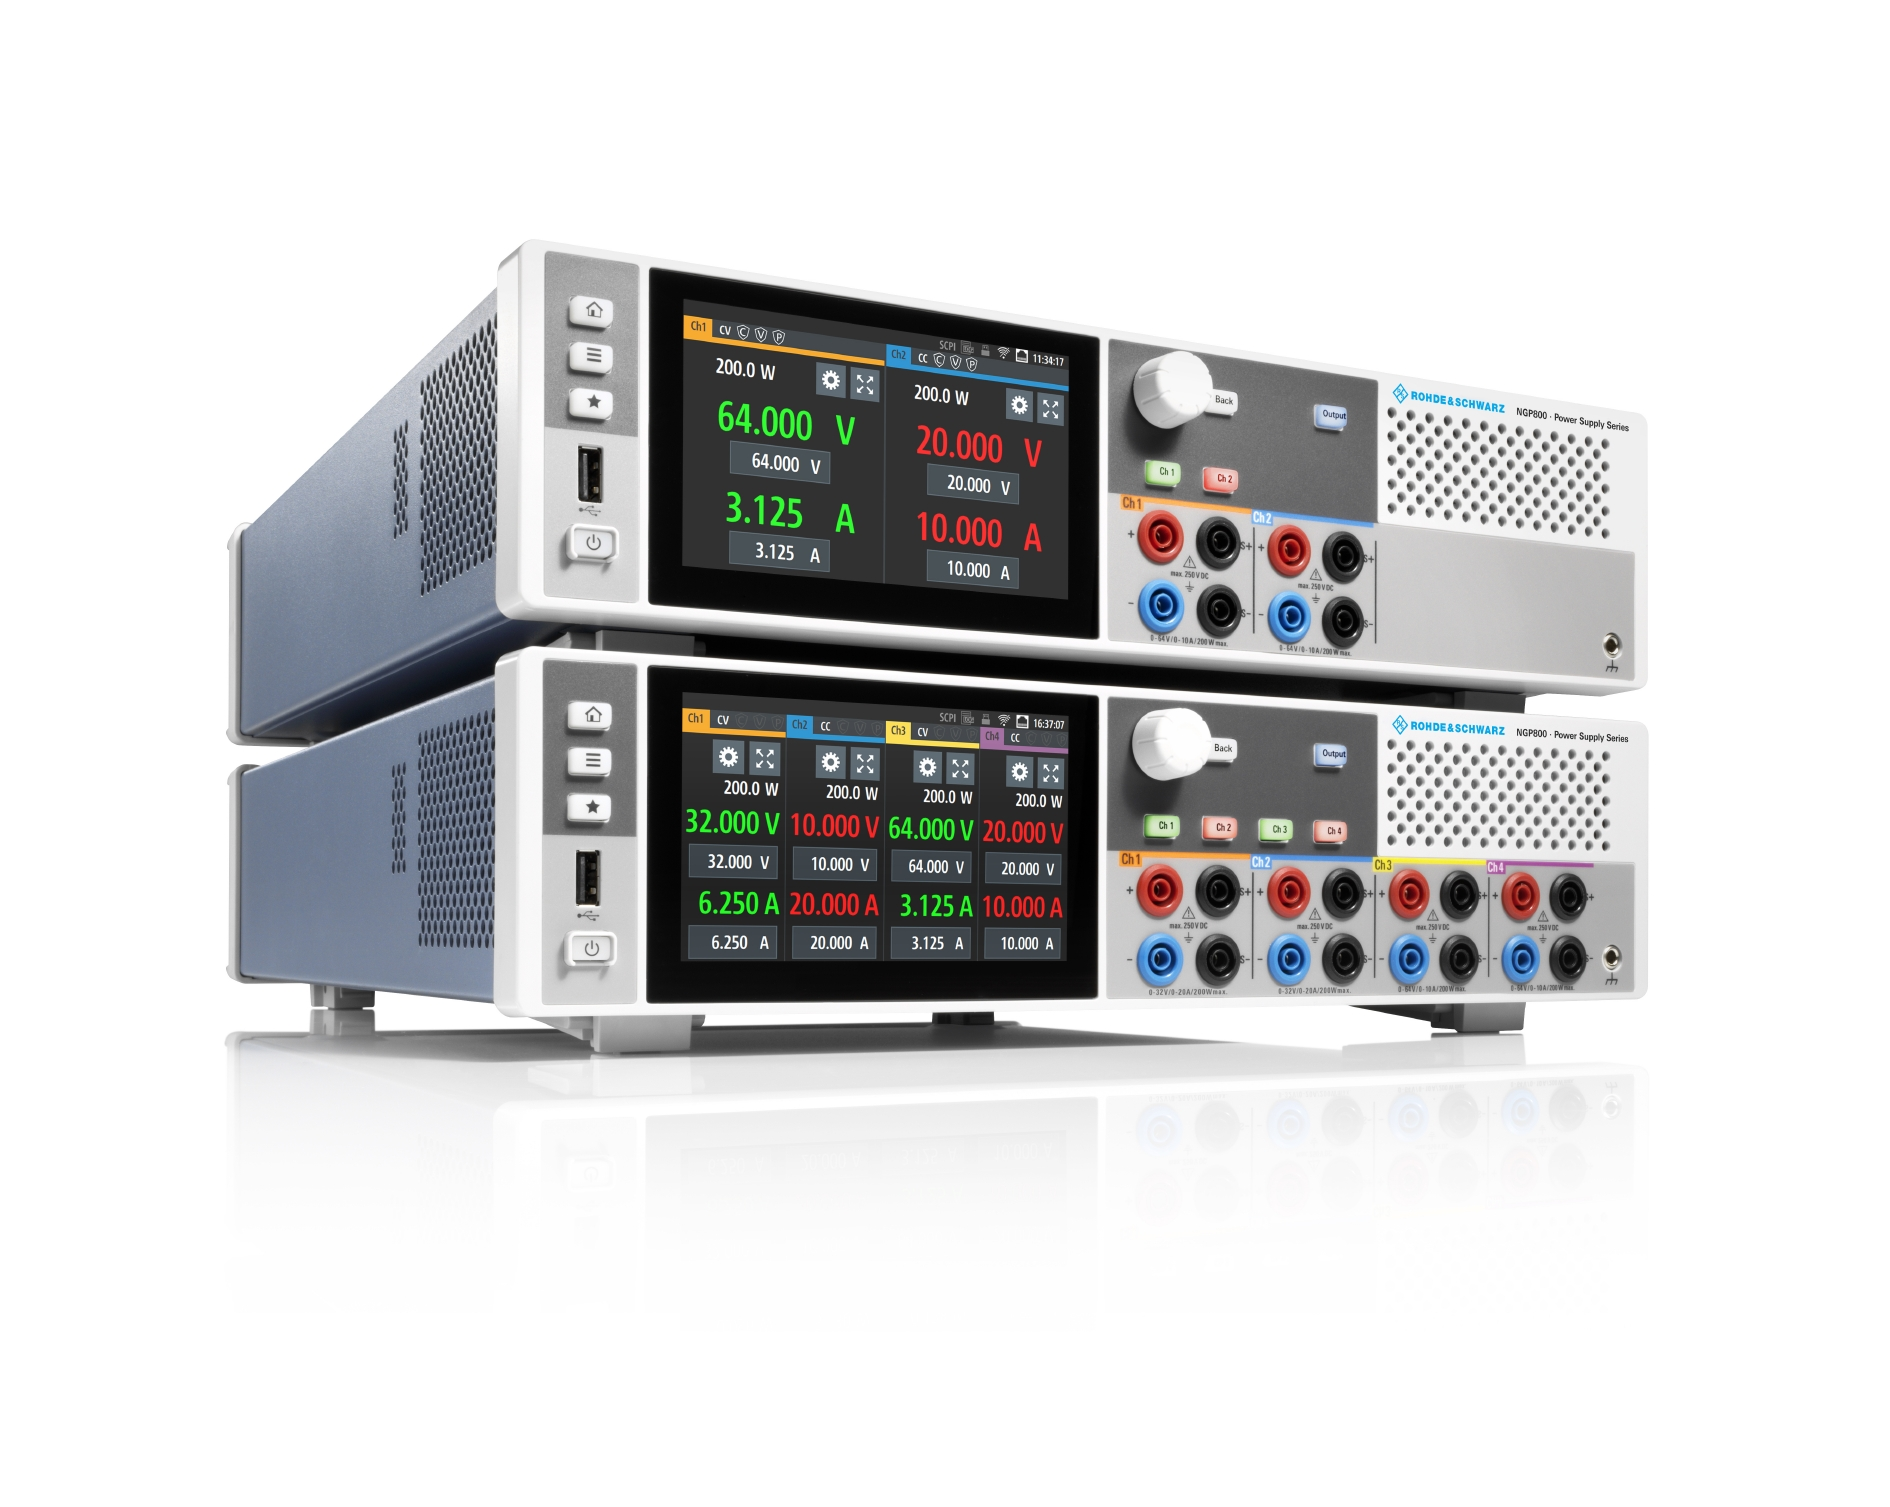 Power Supplies Boost Efficiency w/ Four Independent Channels